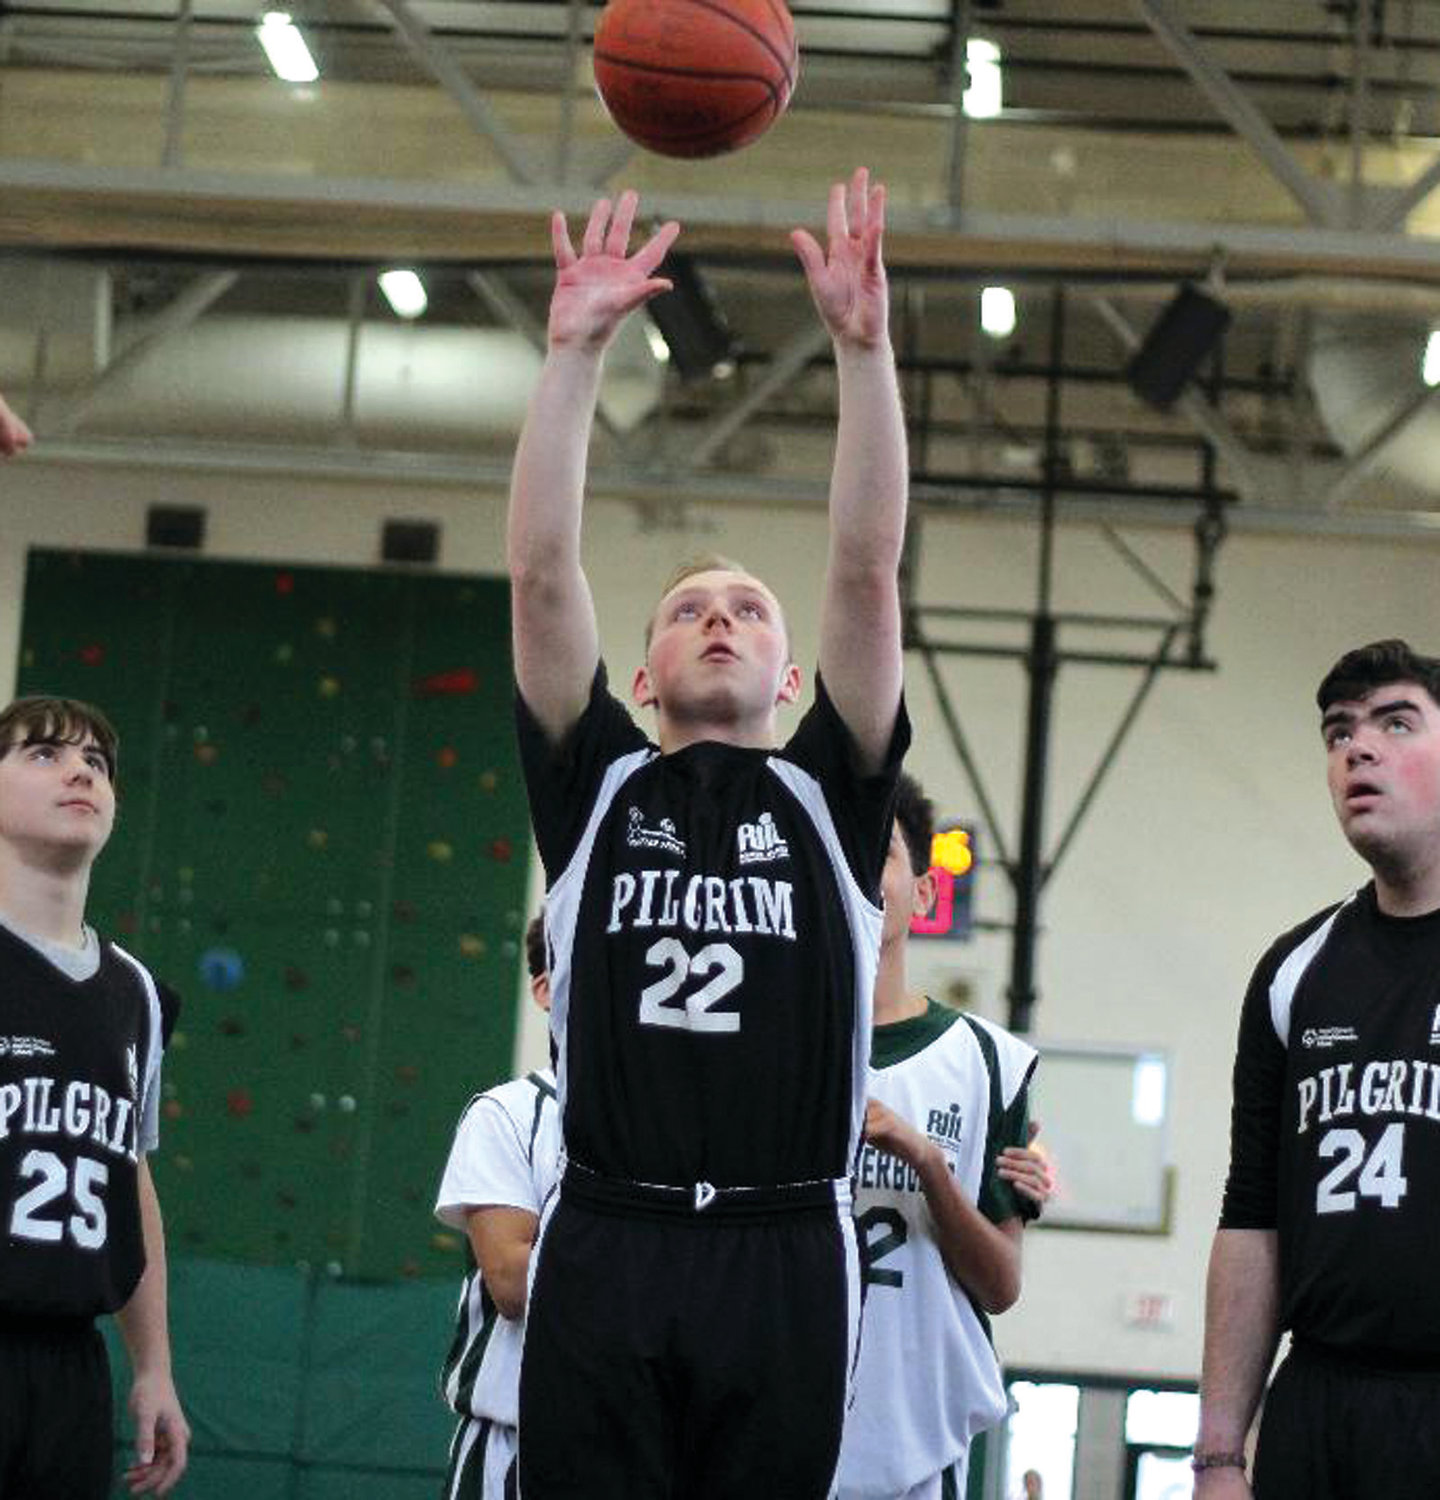 EYES ON THE PRIZE: Pilgrim's John Plunkett puts up a shot last week at Cranston East.